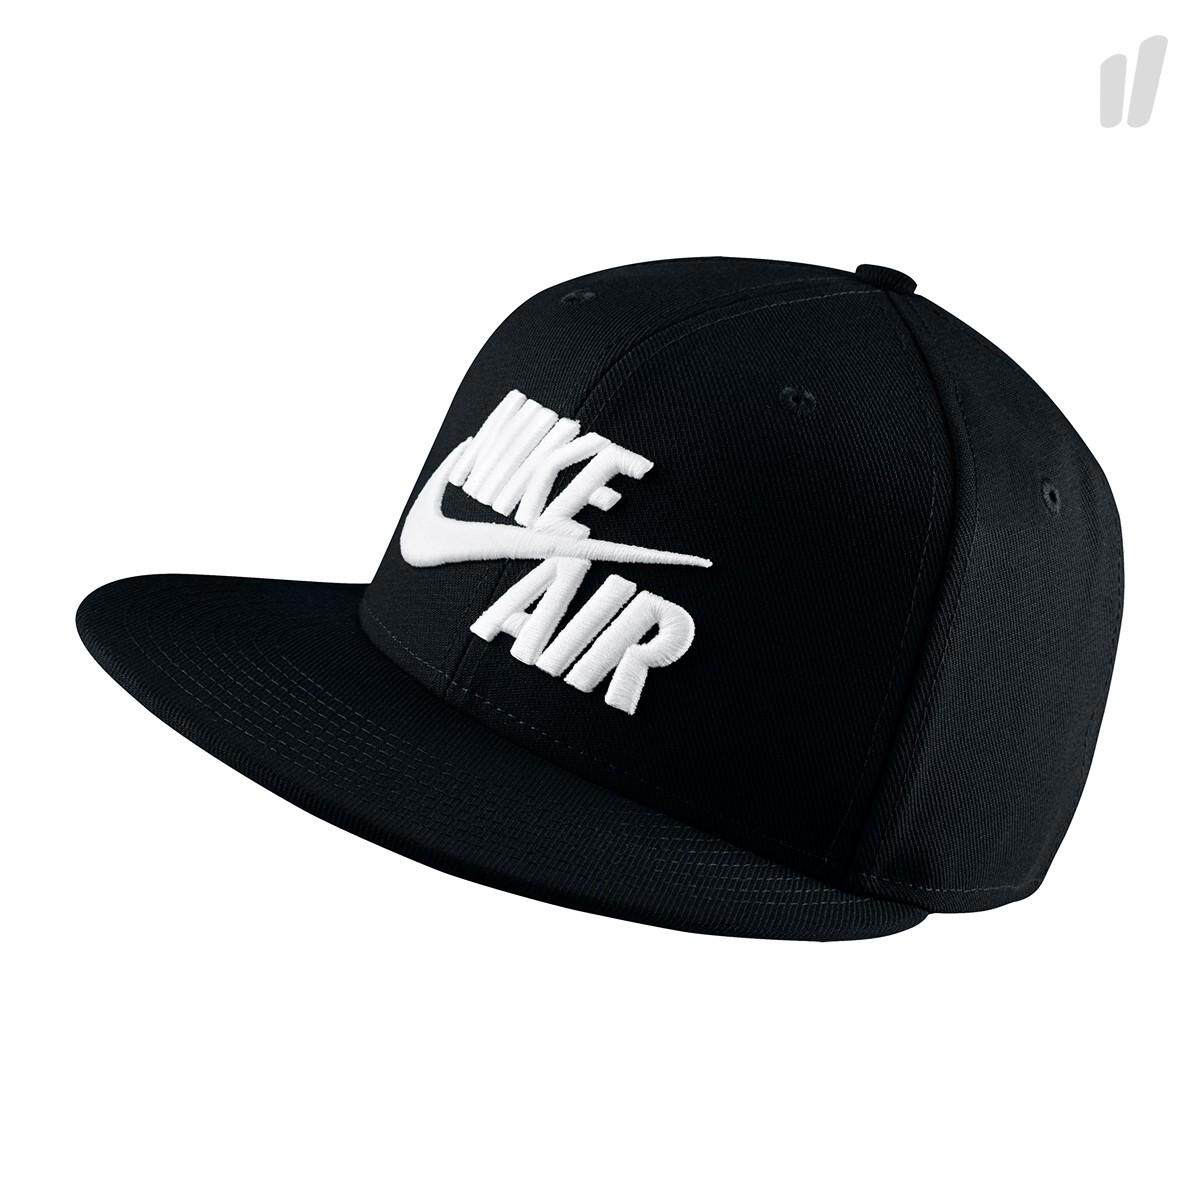 16f4c54061d Nike Men s Hats price in Malaysia - Best Nike Men s Hats